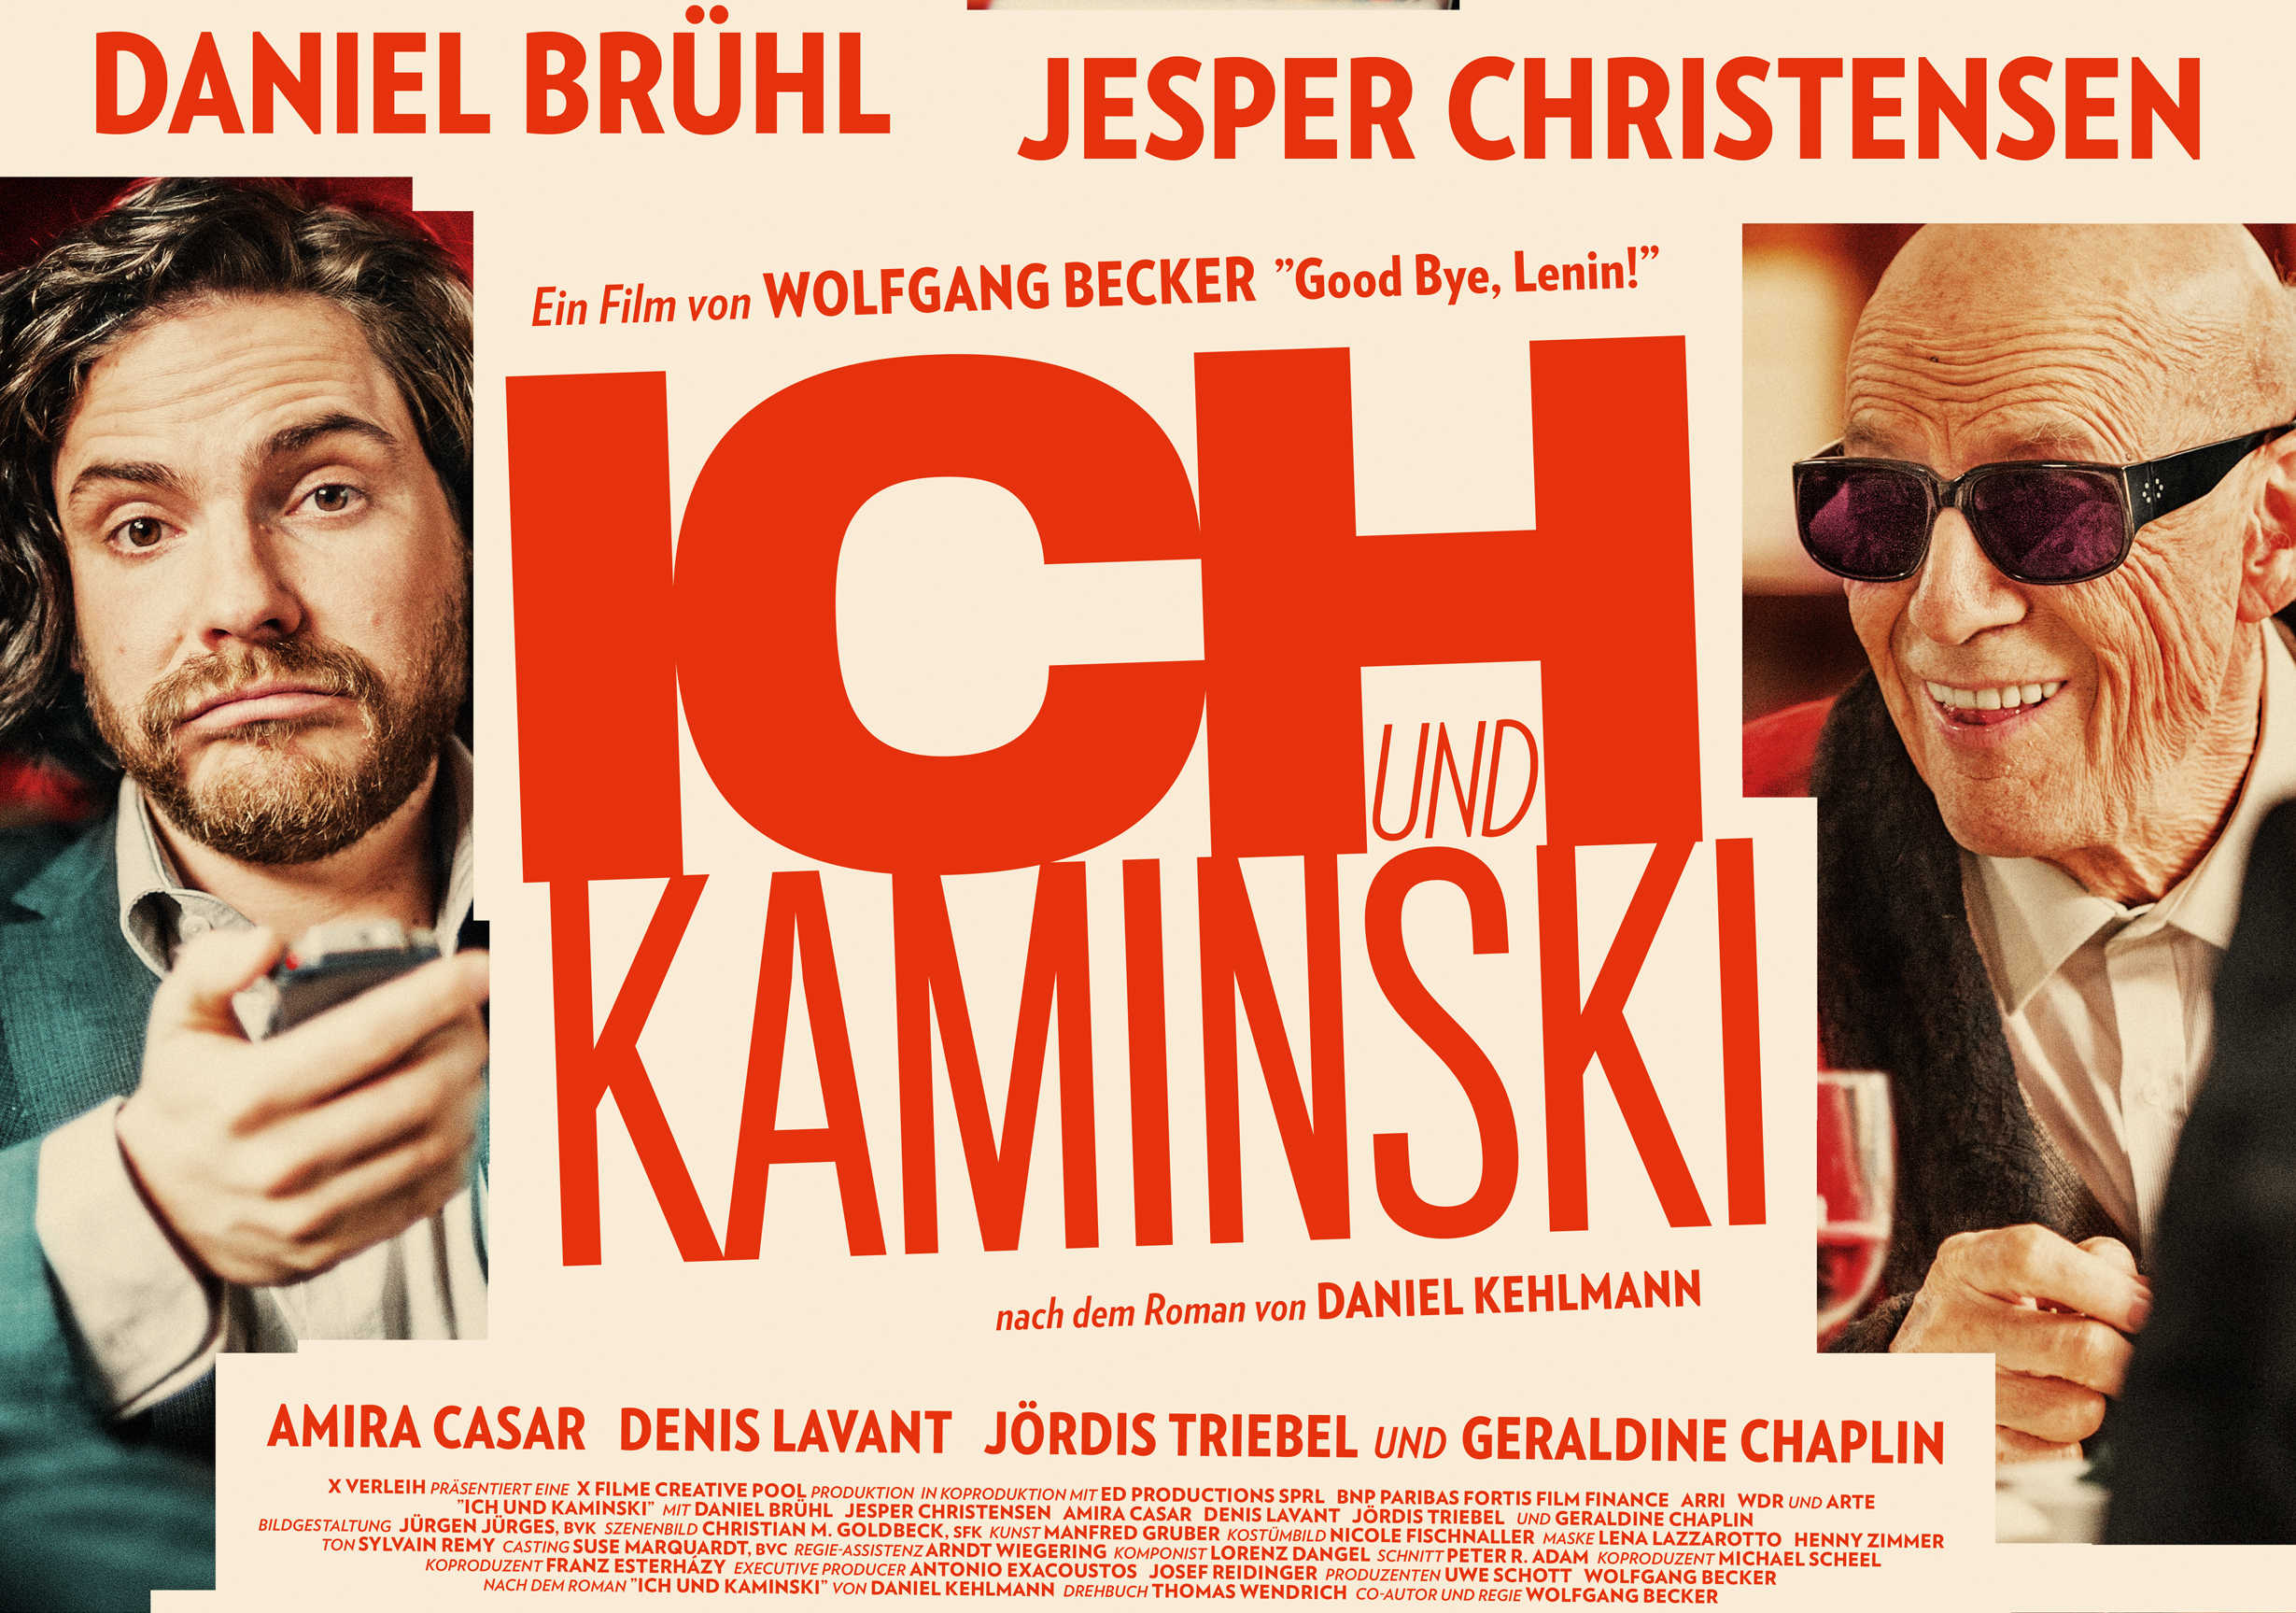 Me and Kaminski (movie) by Goethe-Zentrum